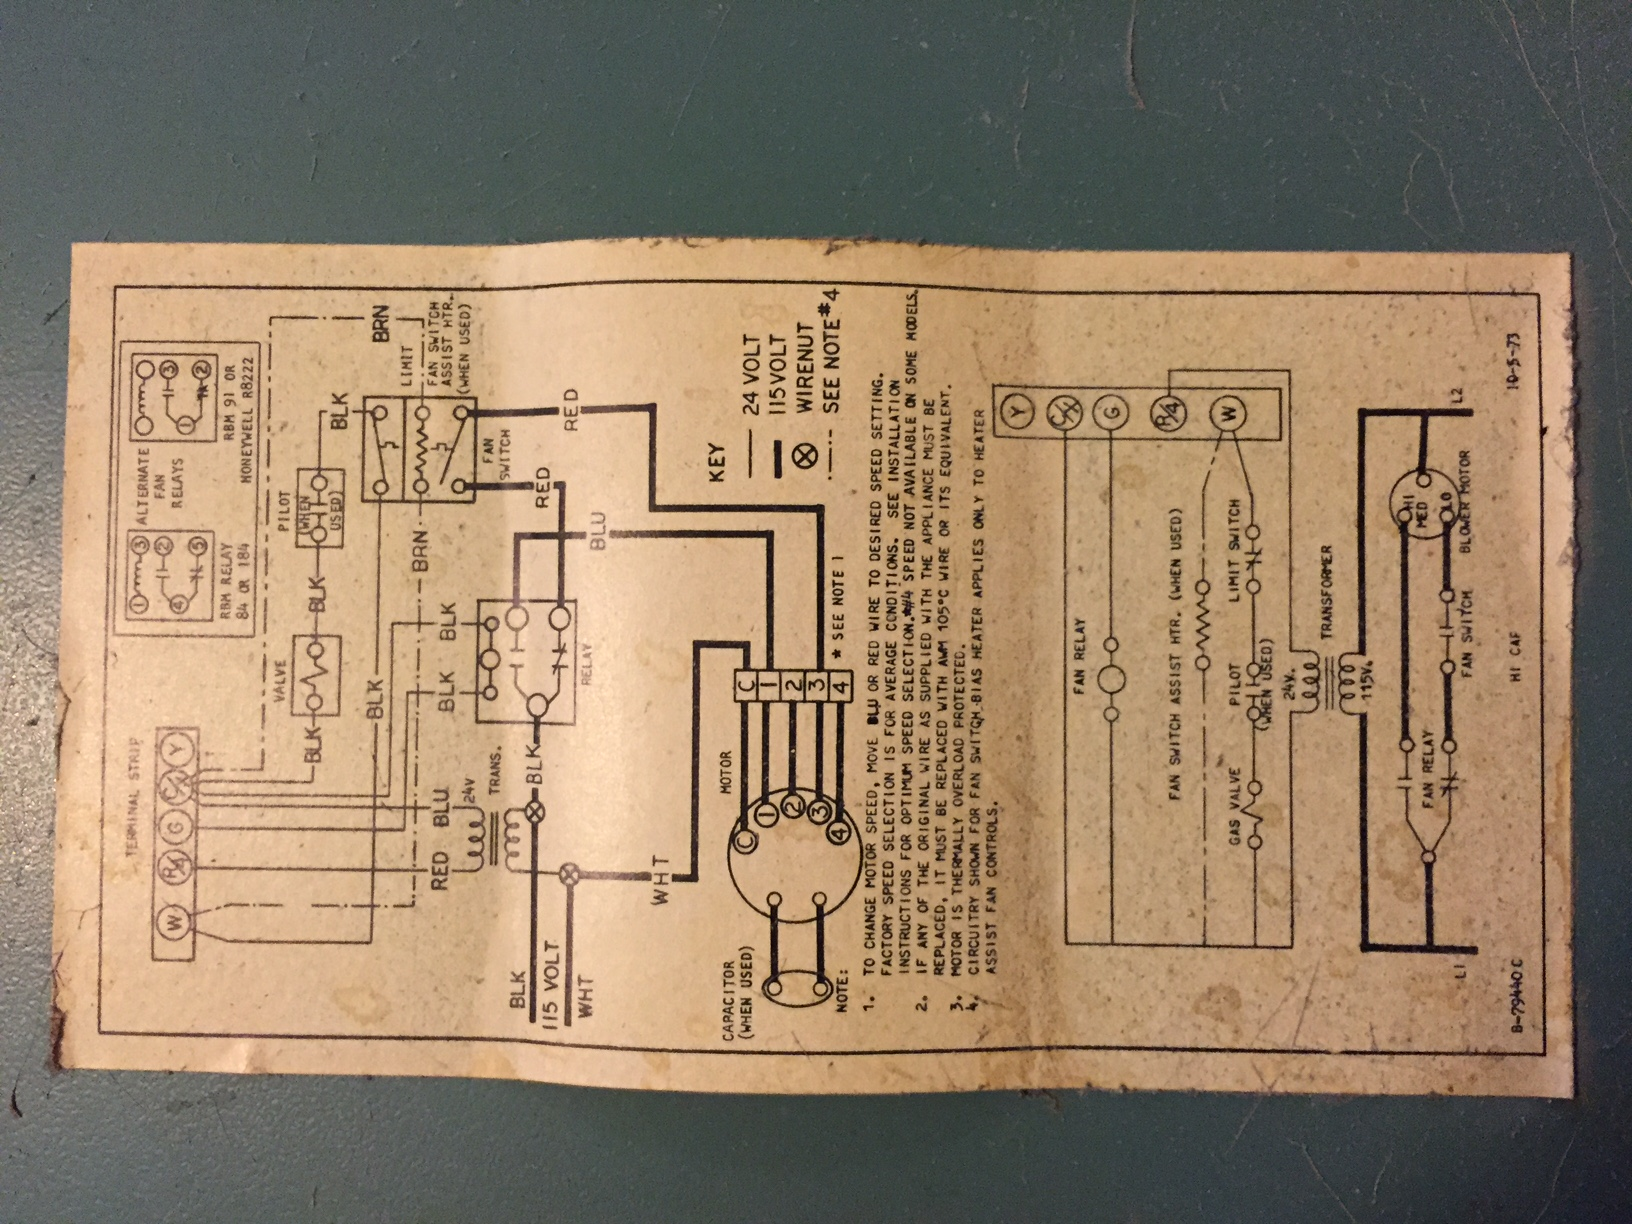 Home Furnace Wiring Diagram In Addition Carrier Split System Wiring